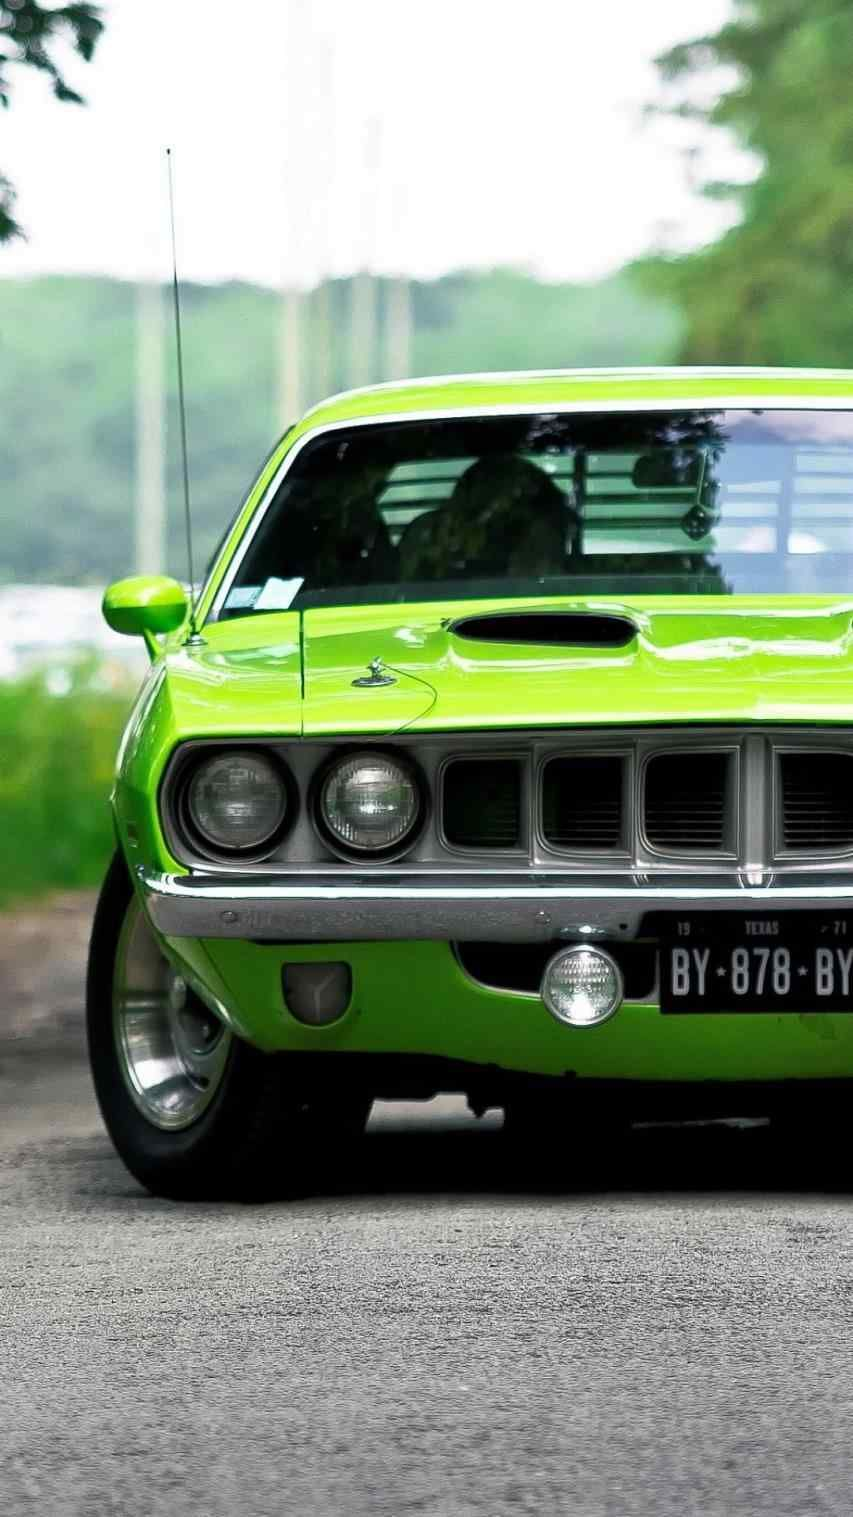 American Muscle Cars Wallpaper Hd Iphone Beautifull Wallpapers